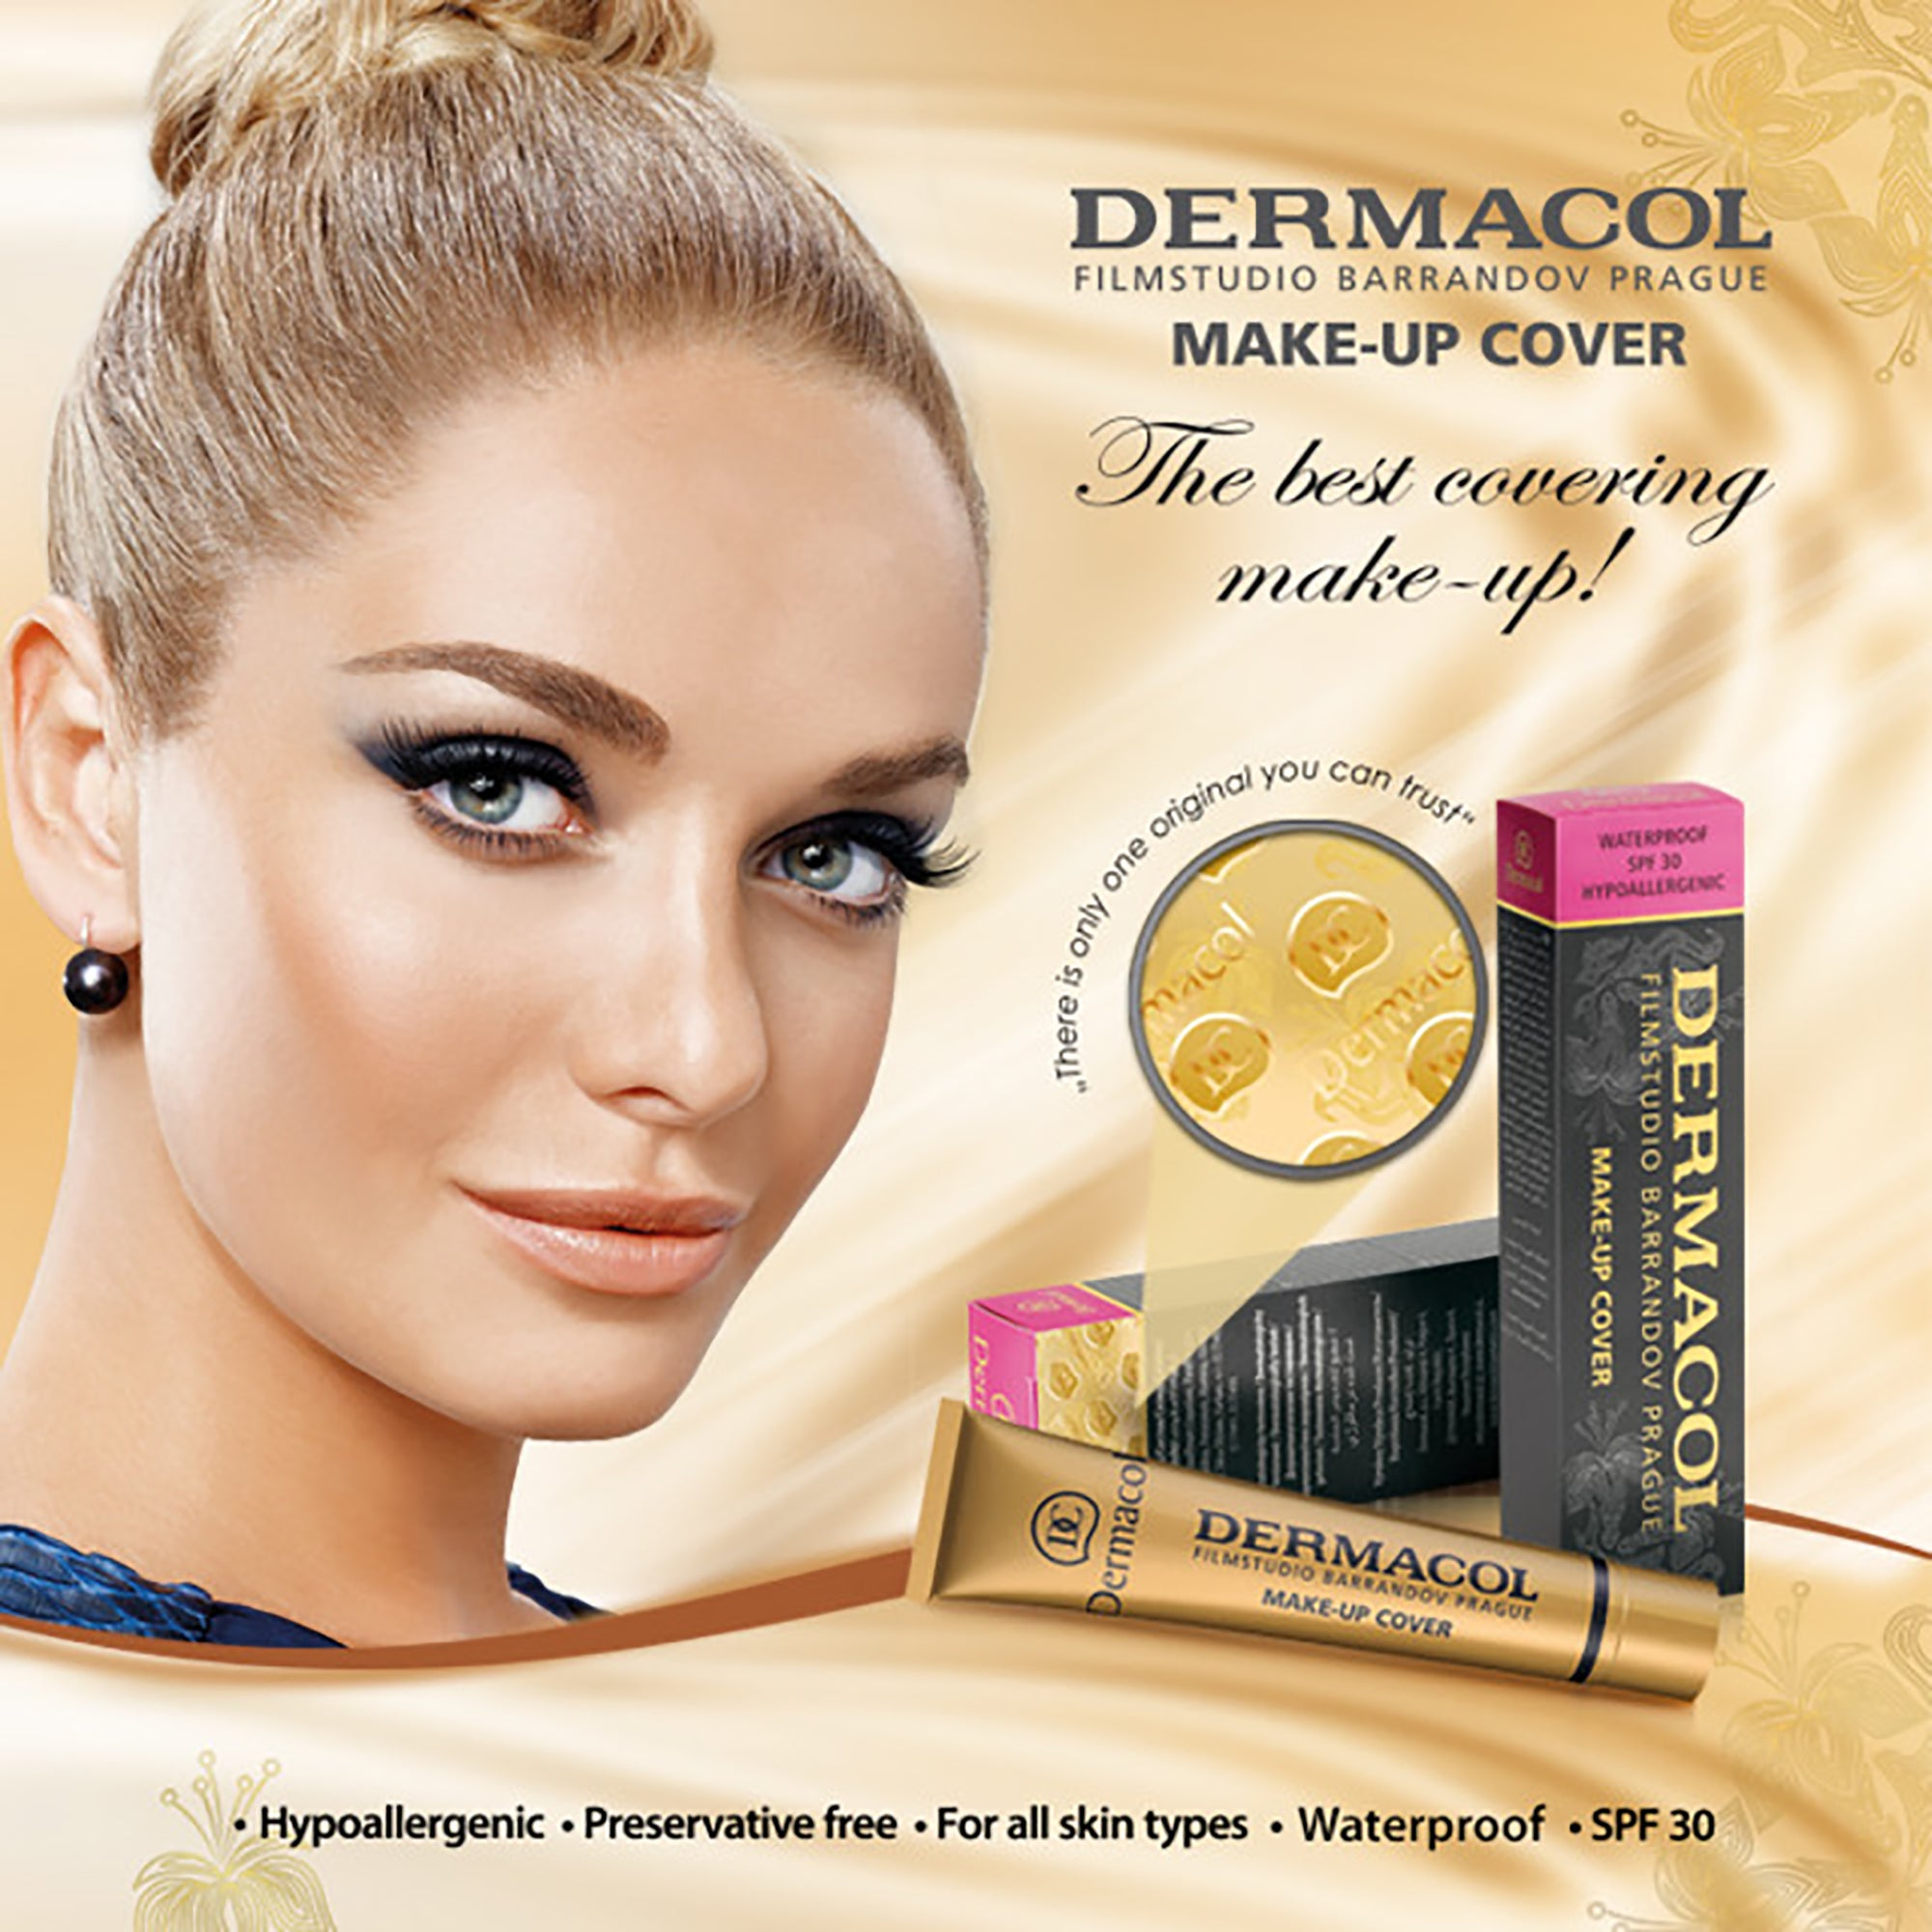 Dermacol make-up cover-NA1329